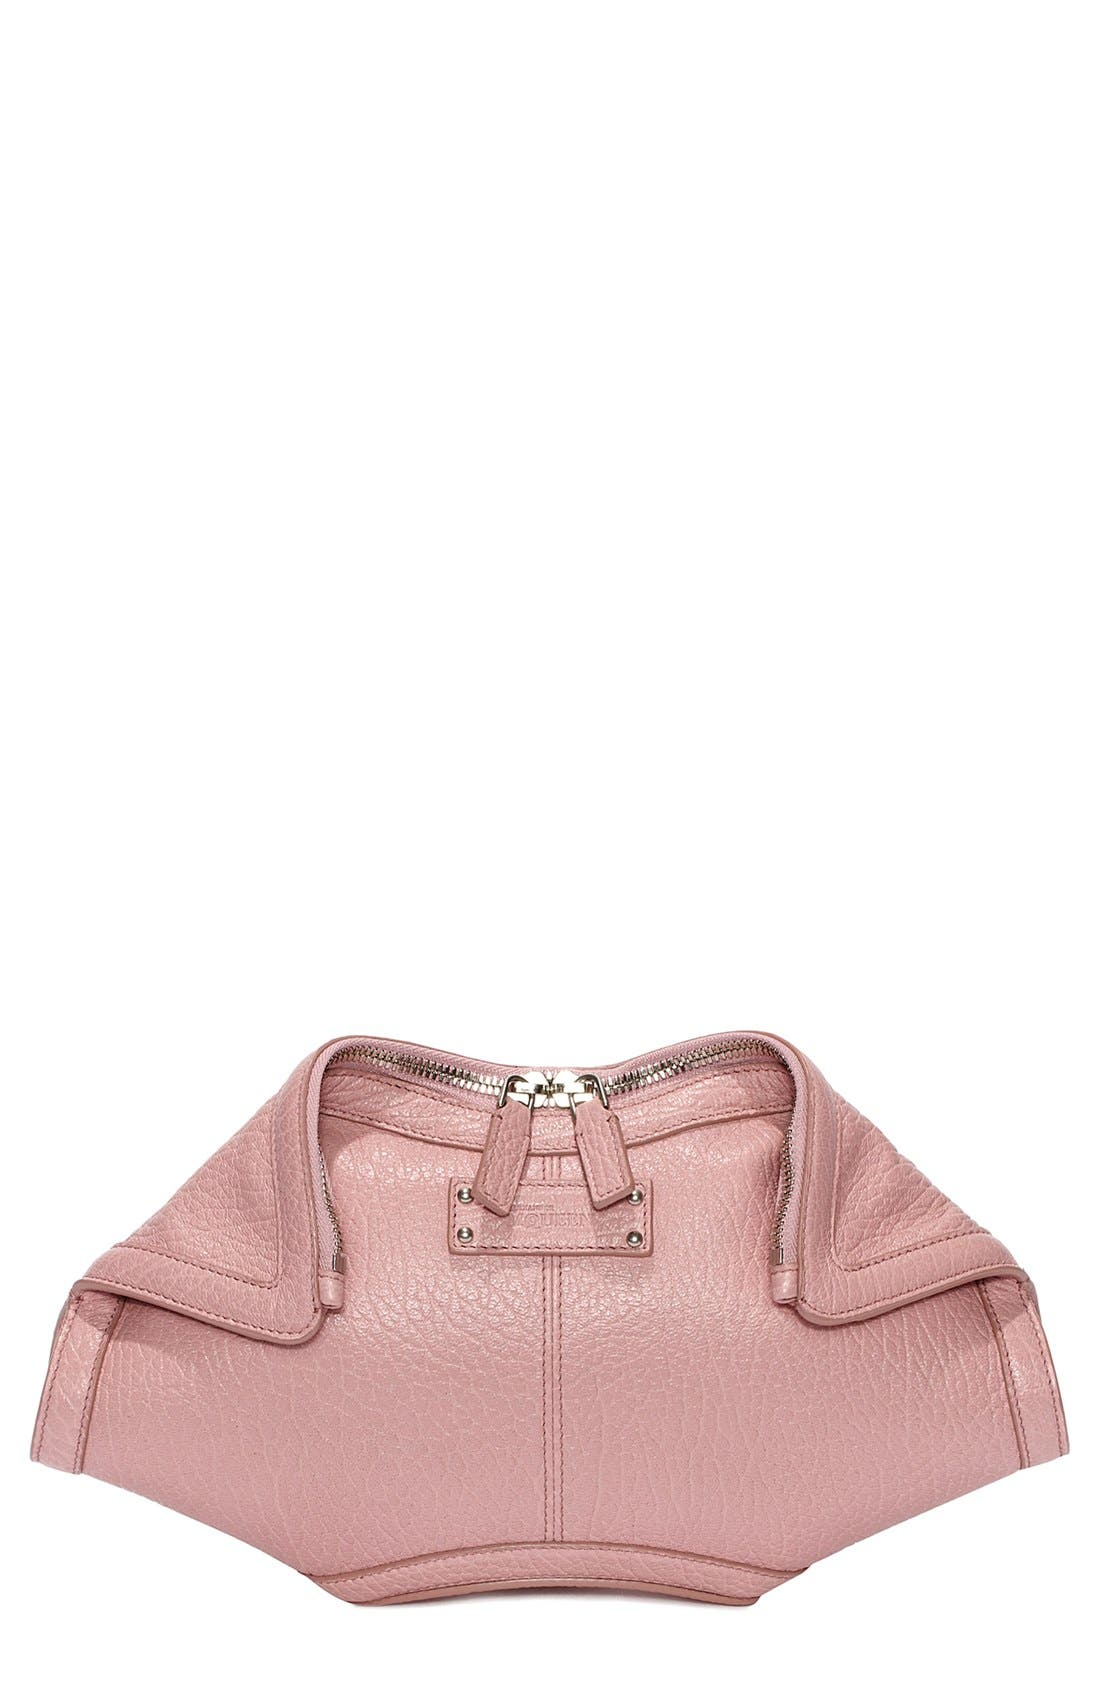 Alternate Image 1 Selected - Alexander McQueen 'Small De Manta' Leather Clutch